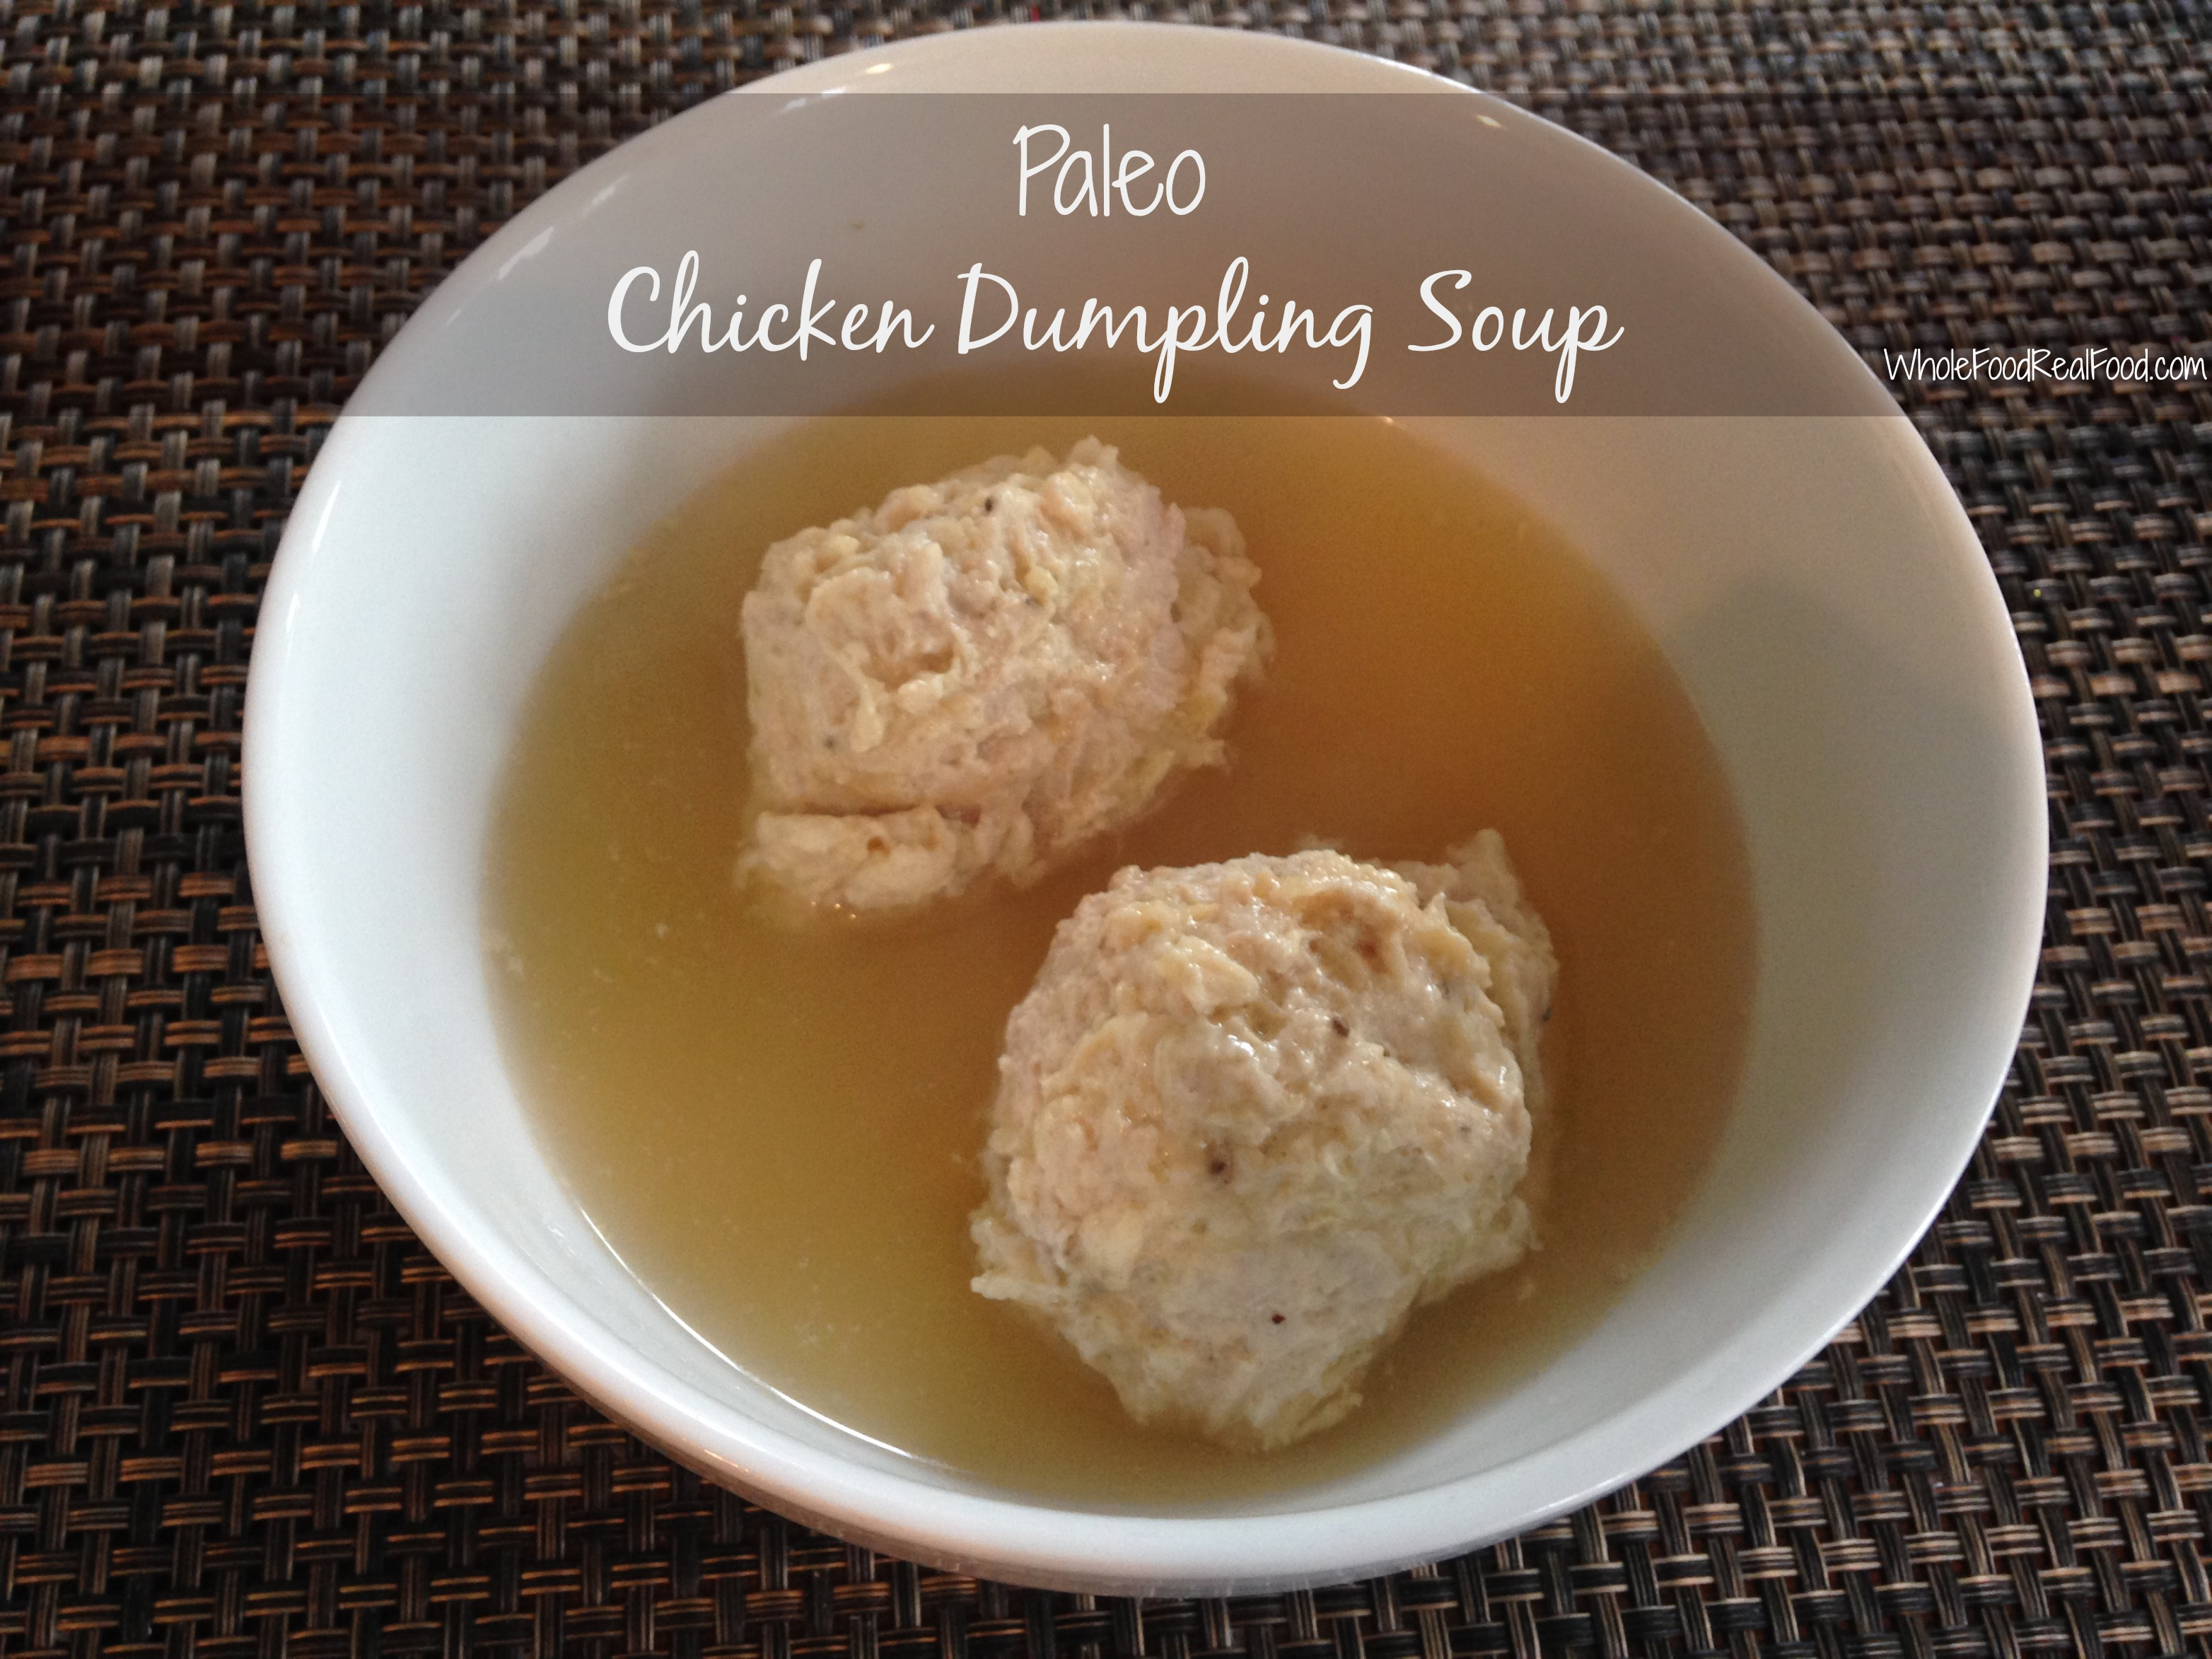 Paleo Chicken Dumpling Soup